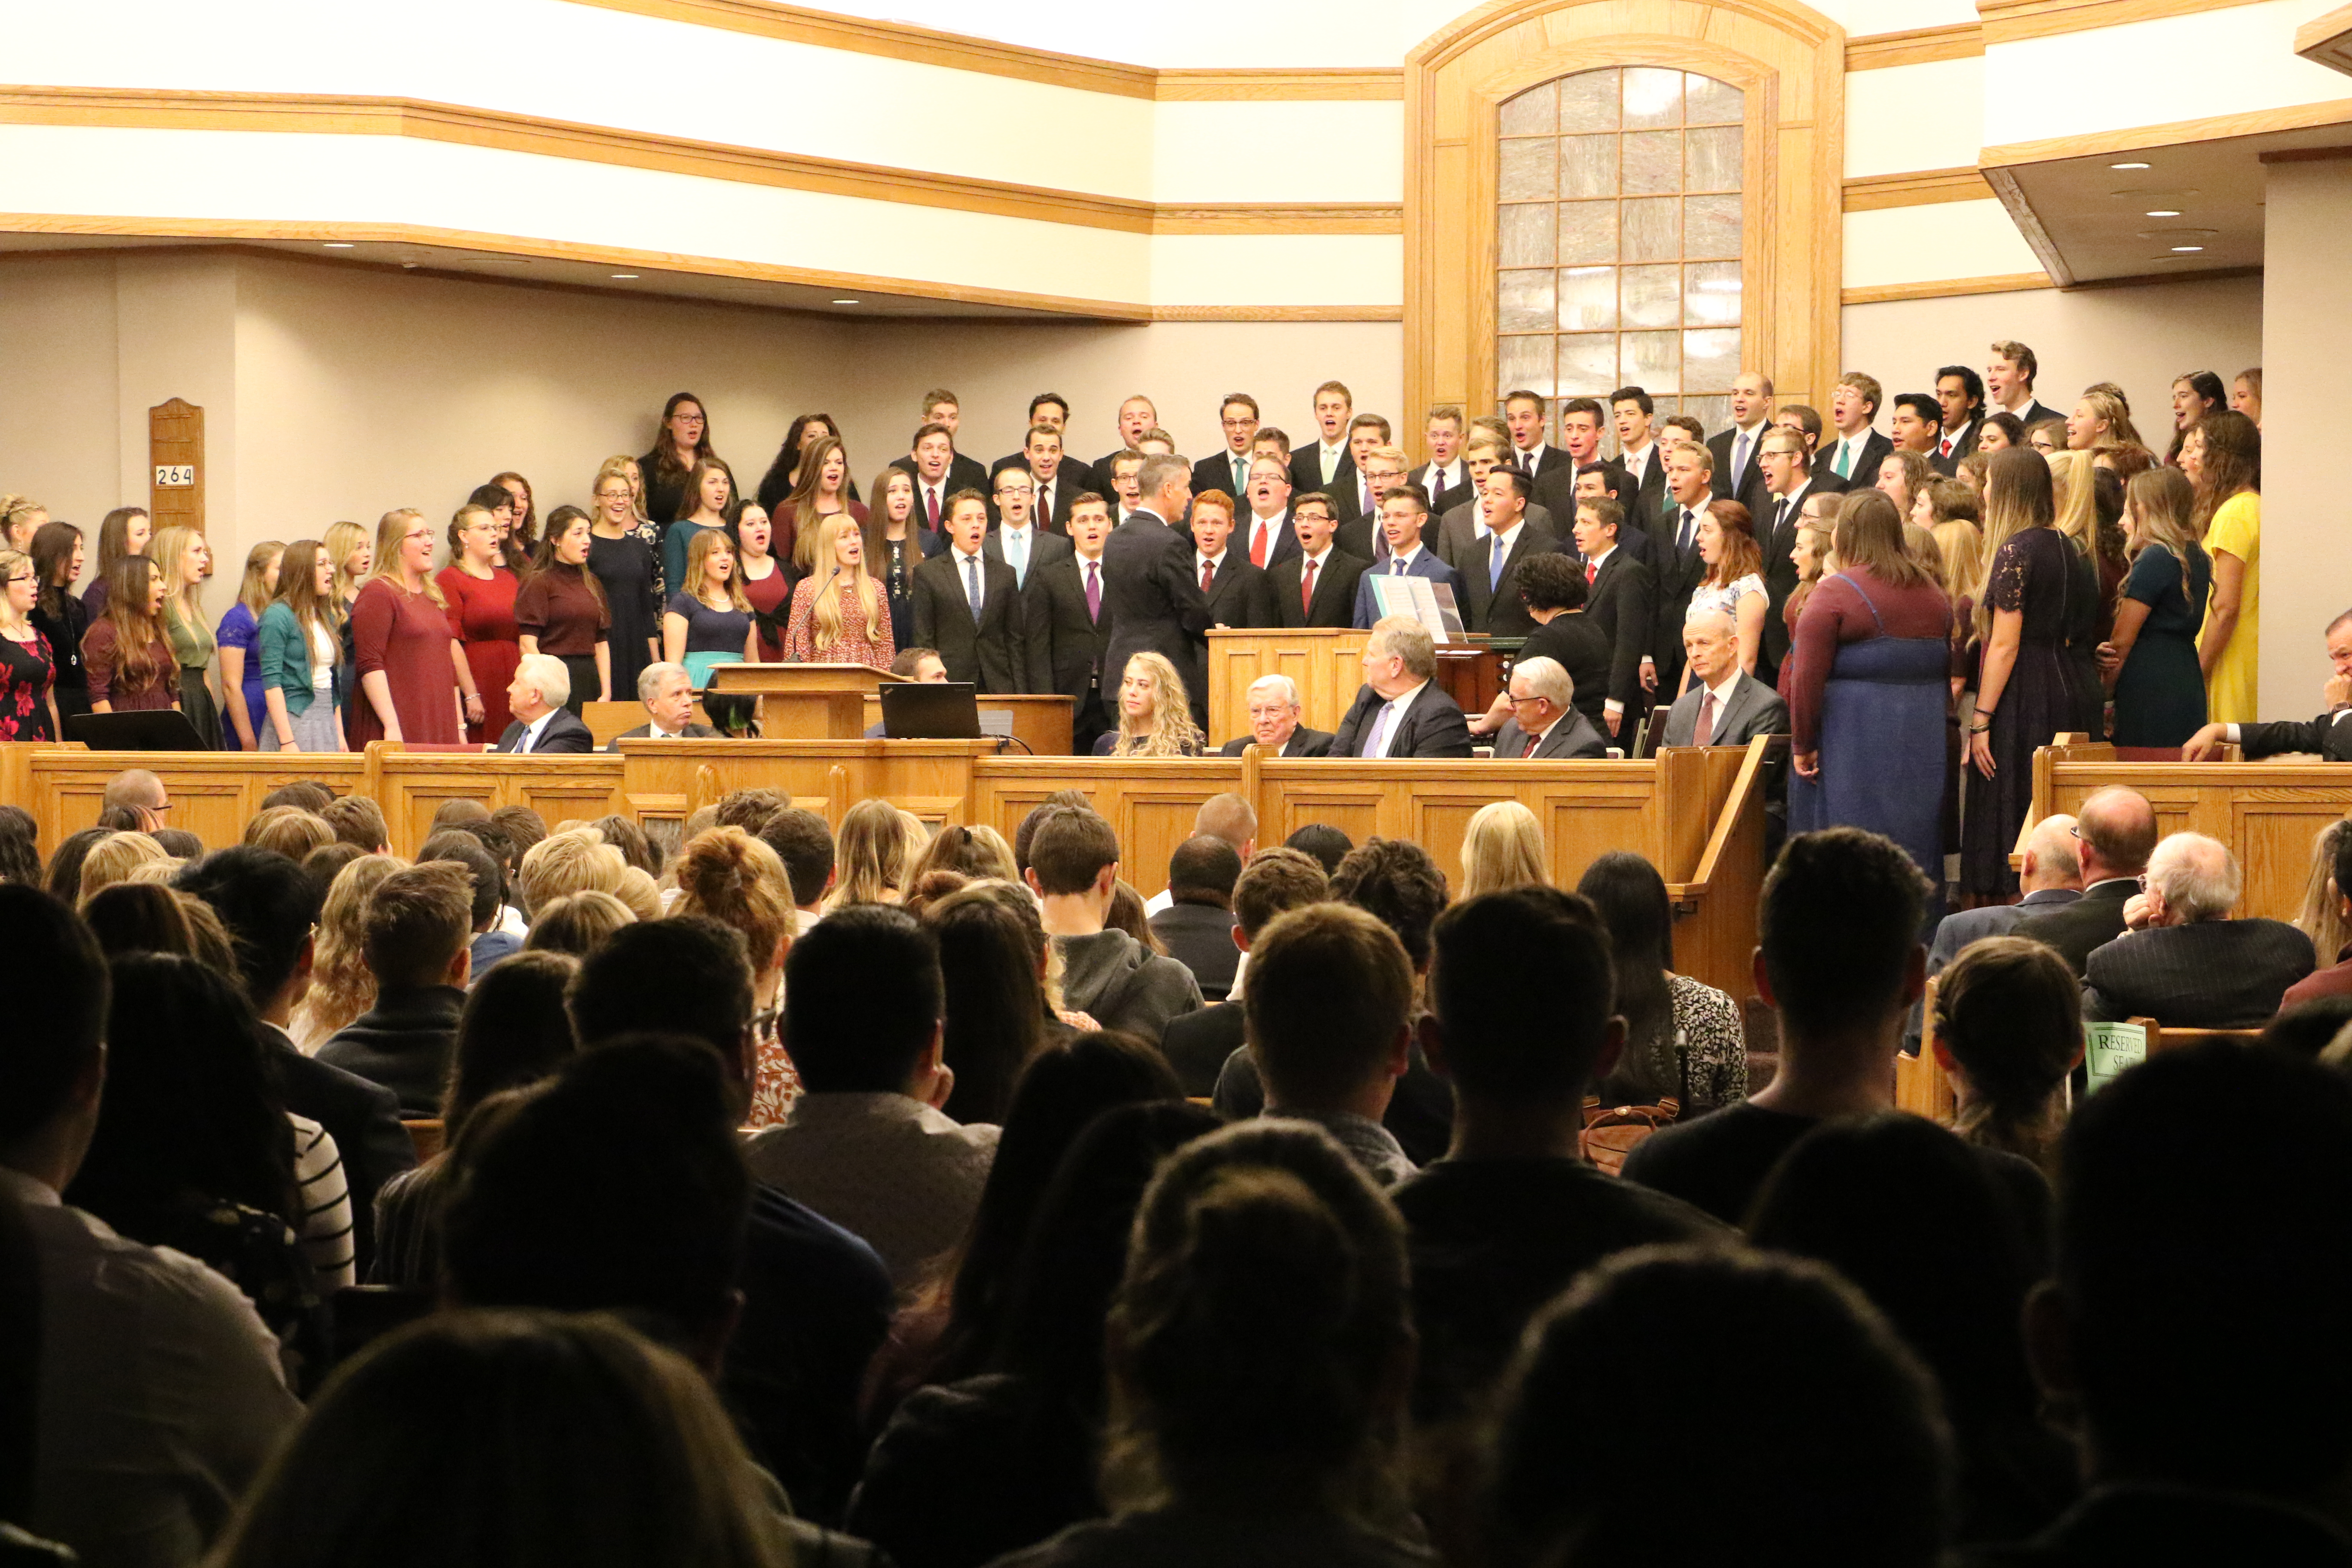 A student choir performs during a devotional at the institute of religion on the UVU campus on Friday, Sept. 20, 2019 where President M. Russell Ballard spoke.